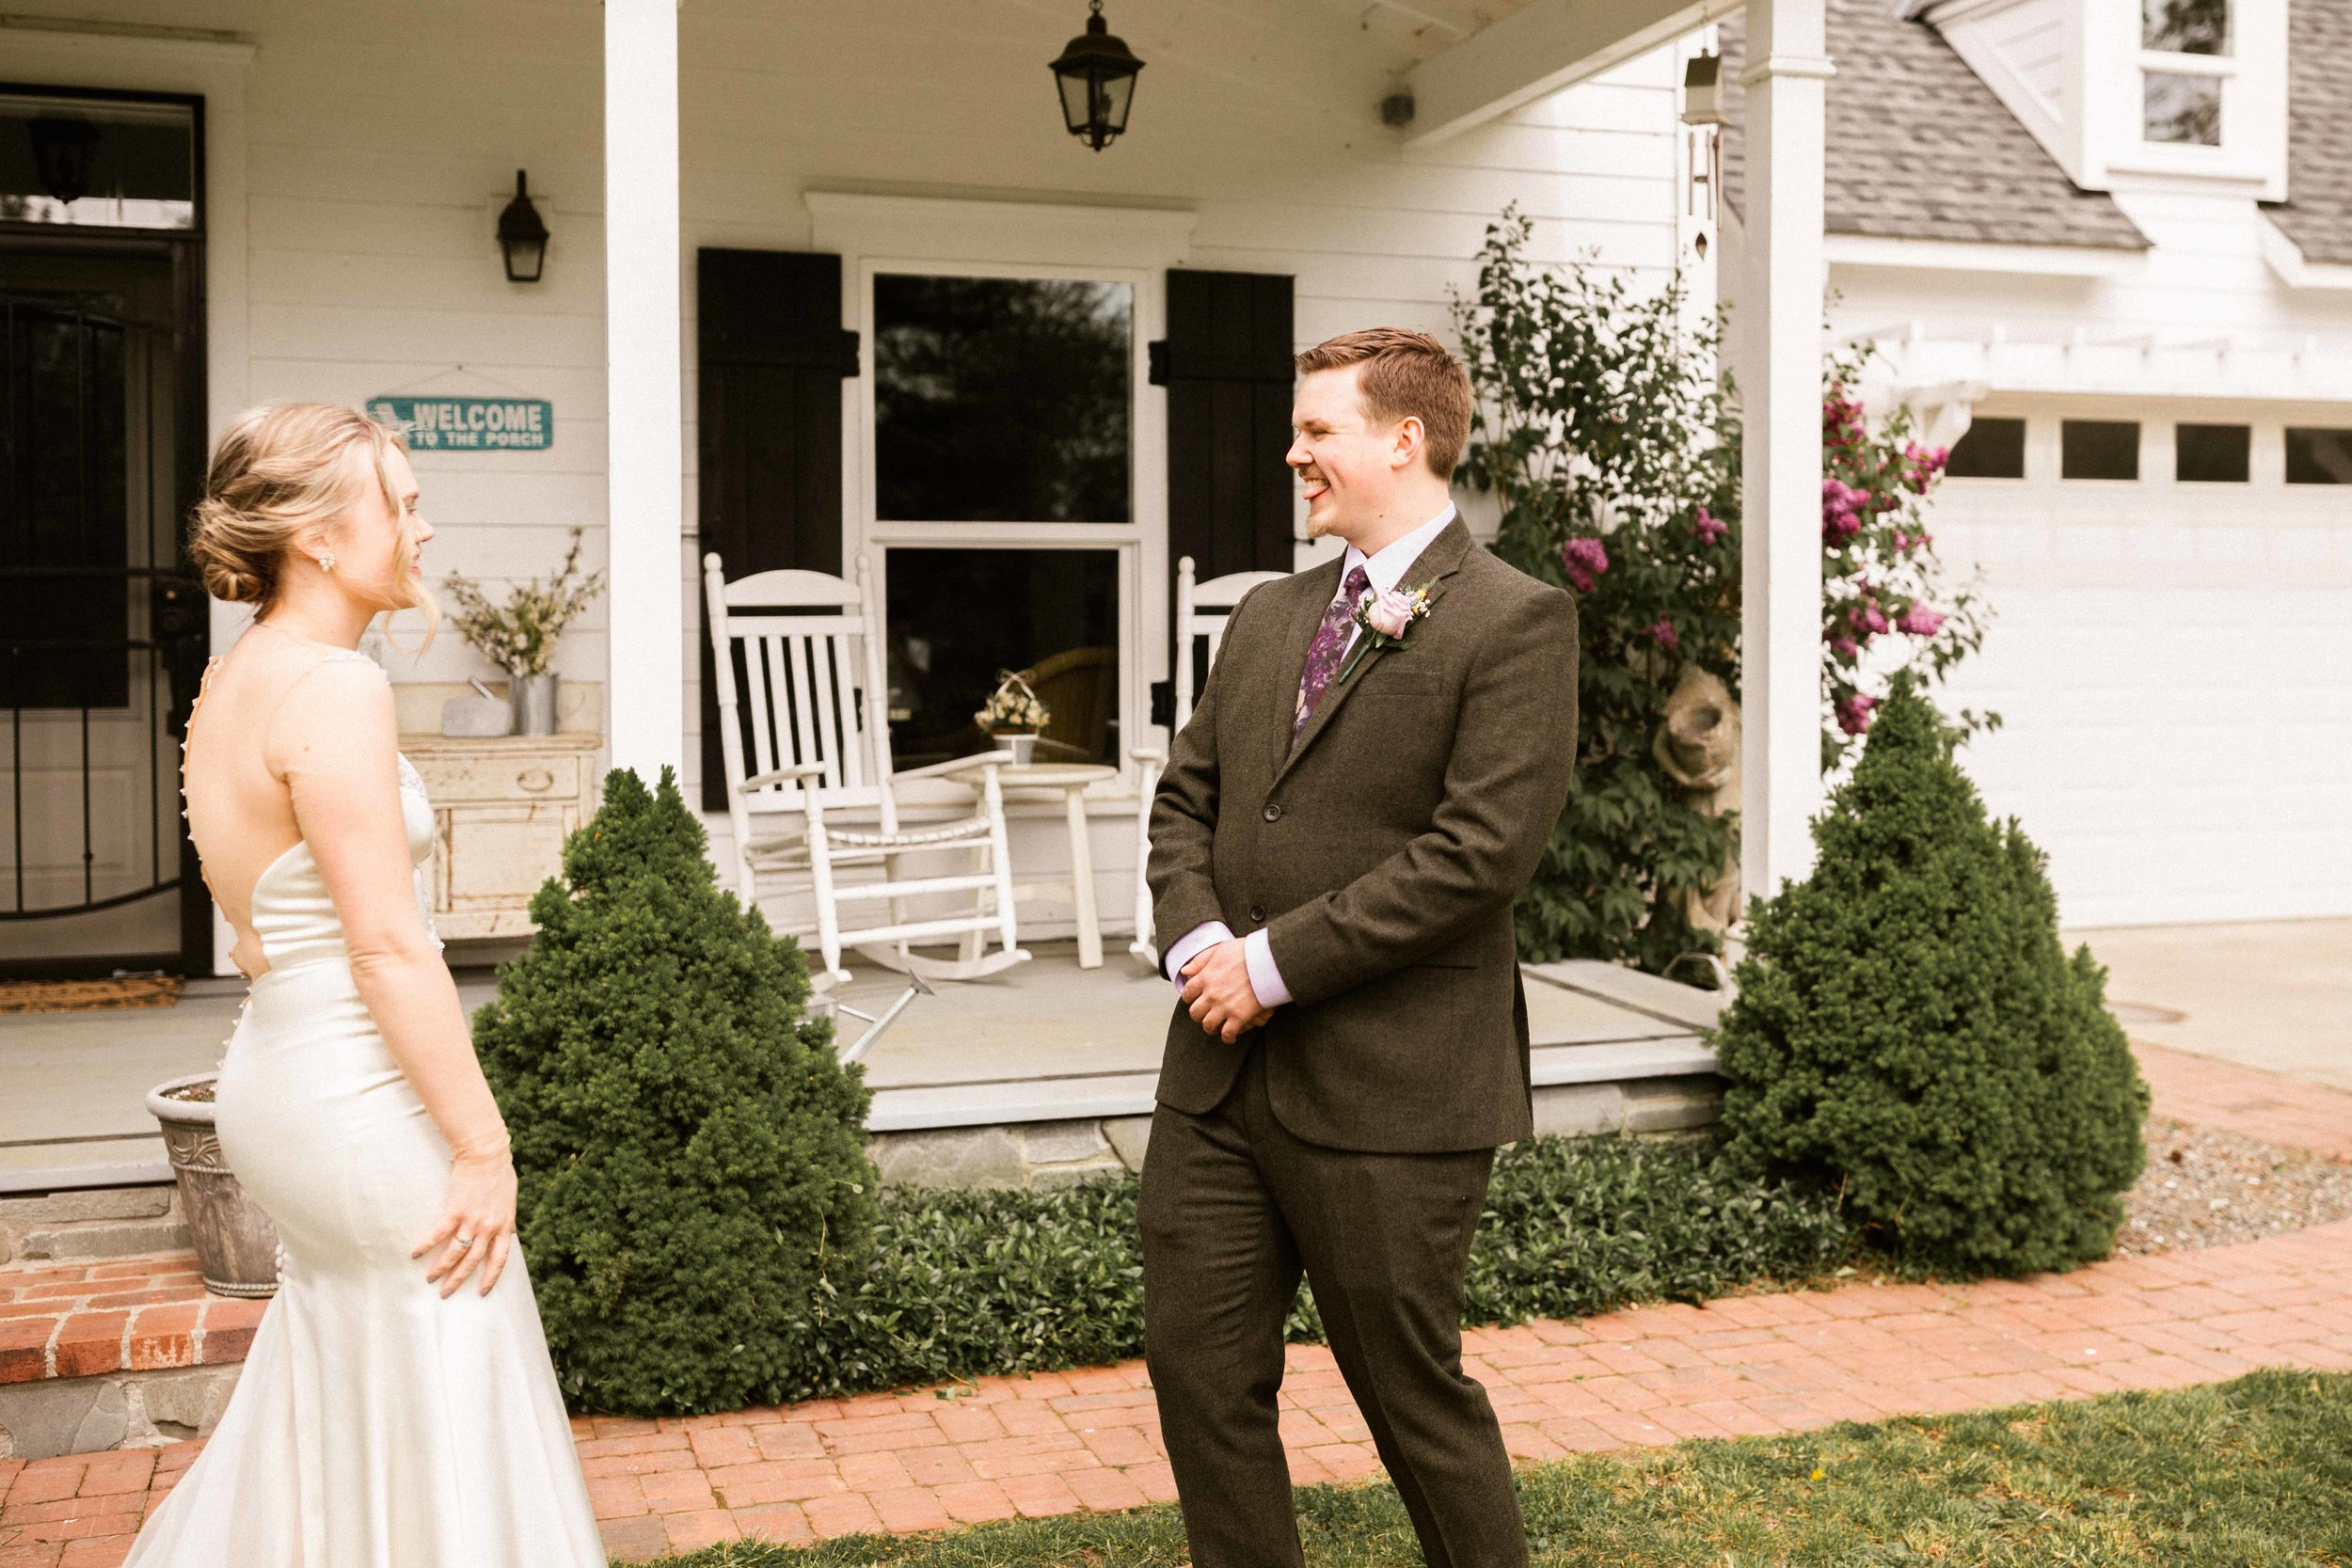 everson-barn-wedding-35.jpg